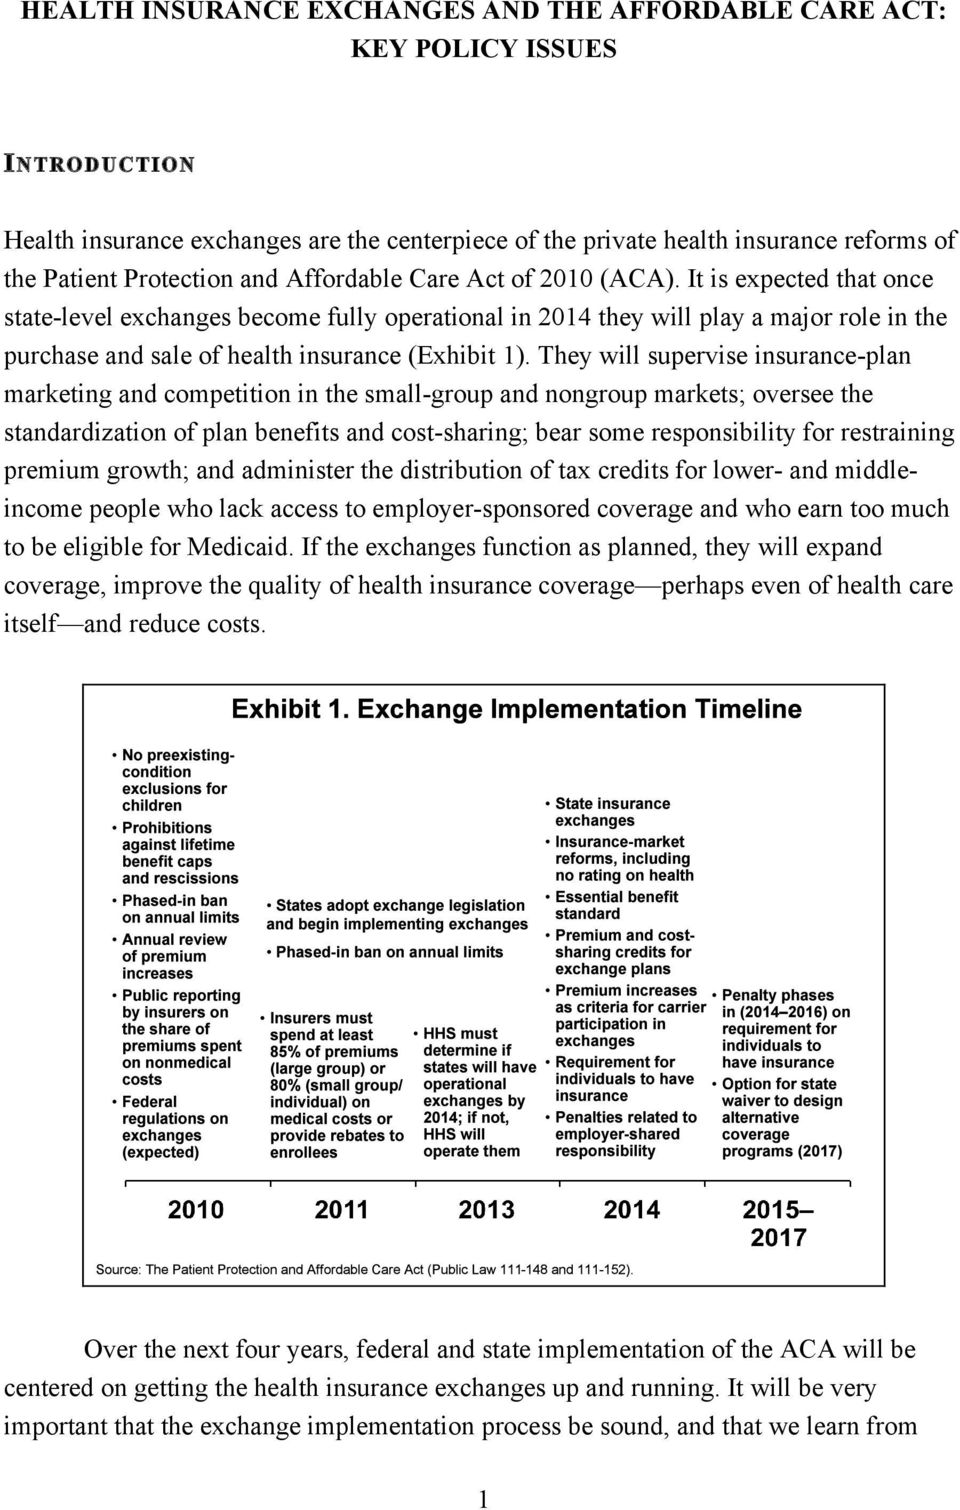 It is expected that once state-level exchanges become fully operational in 2014 they will play a major role in the purchase and sale of health insurance (Exhibit 1).